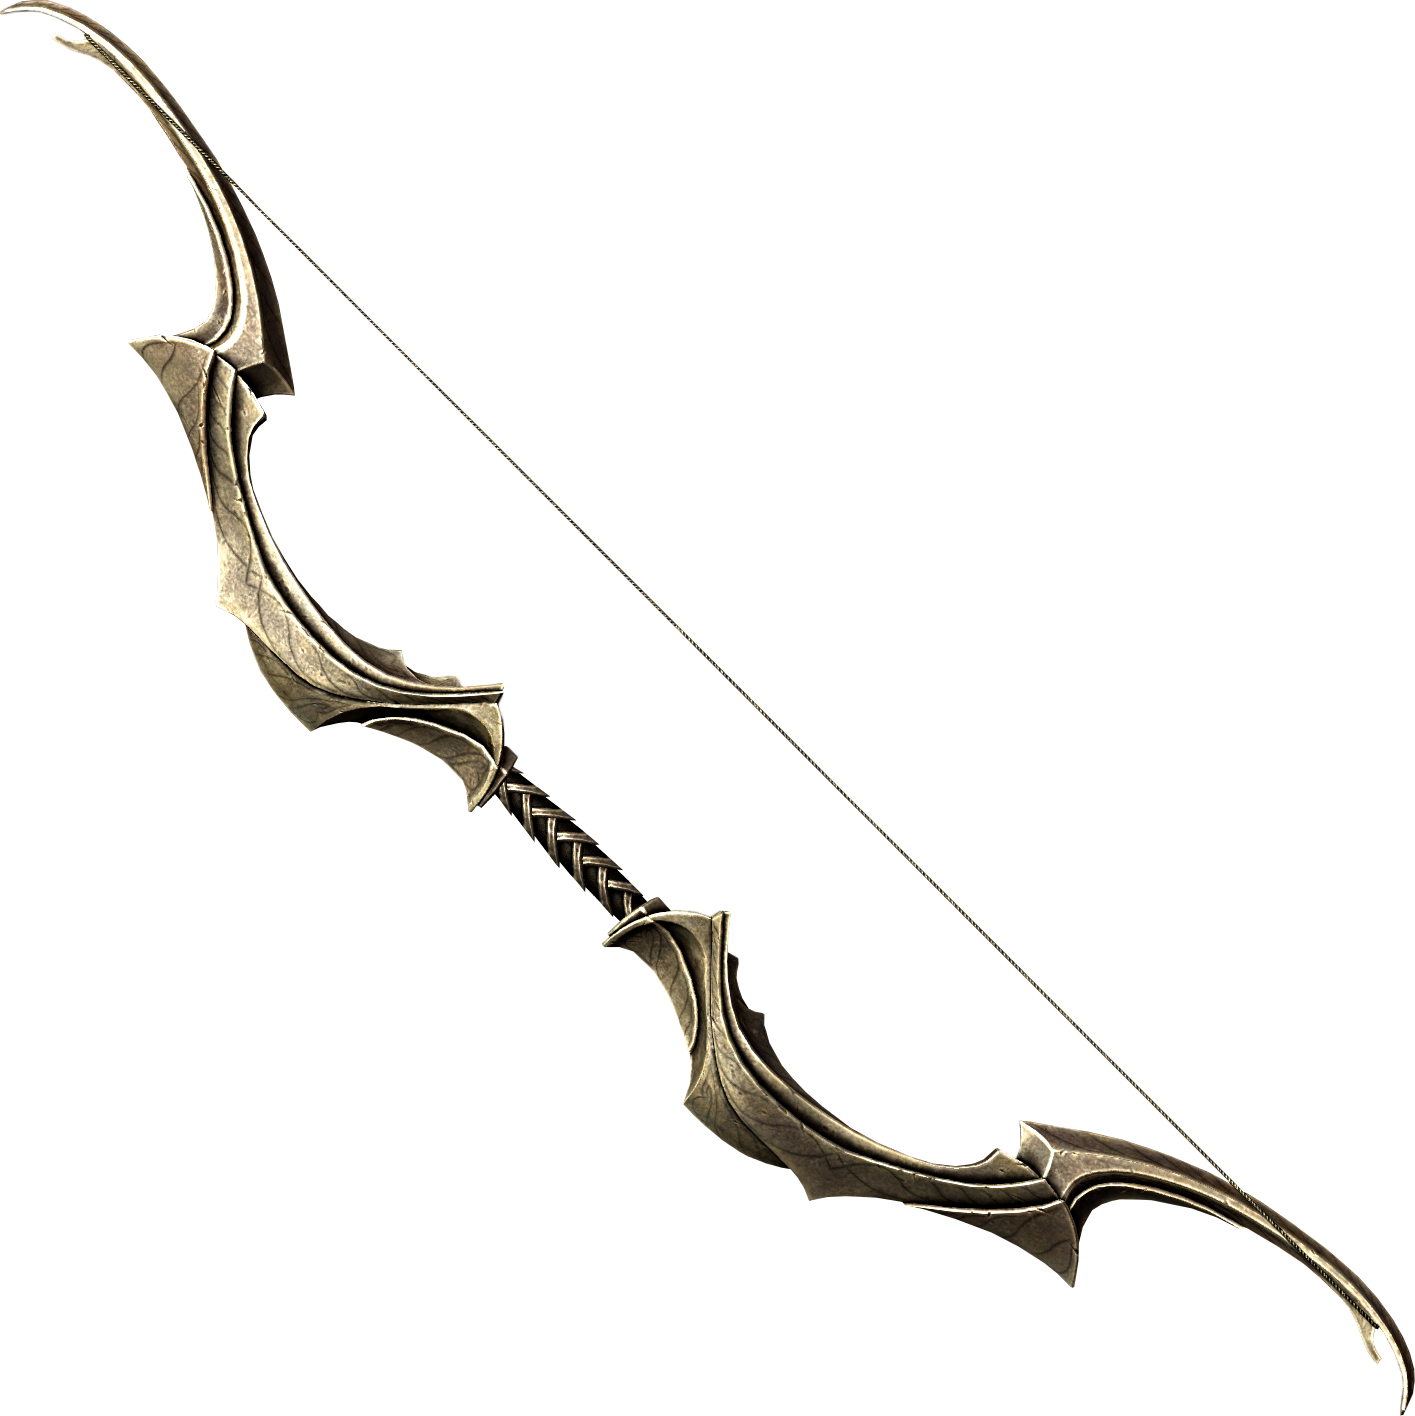 Weapon drawing arrow. Bows skyrim elder scrolls